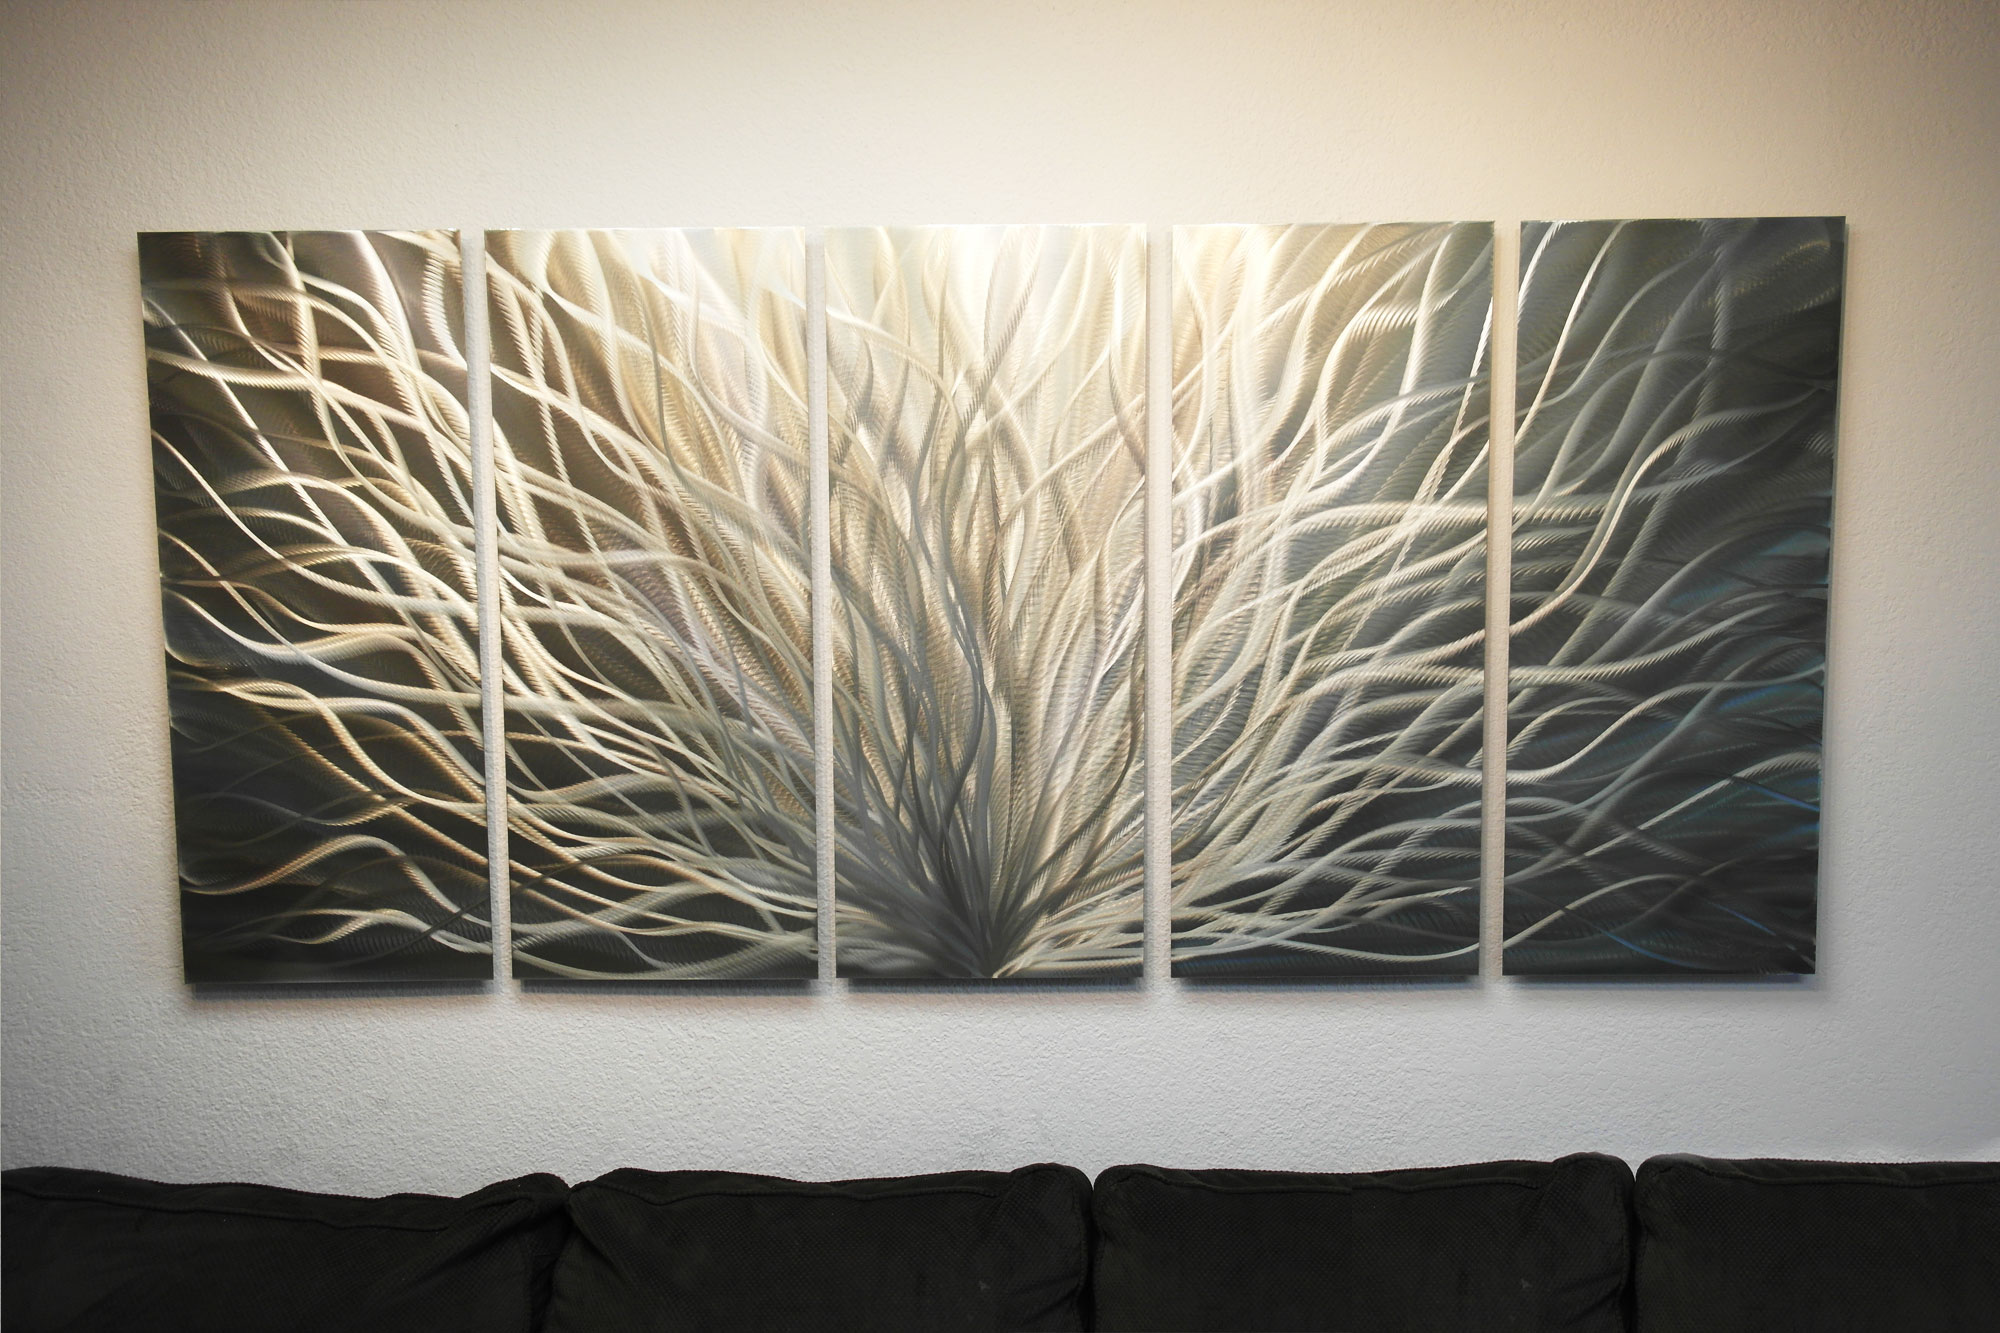 Large Radiance Gold Silver Metal Wall Art Abstract Sculpture Painting Modern Decor Silver 36 X 79